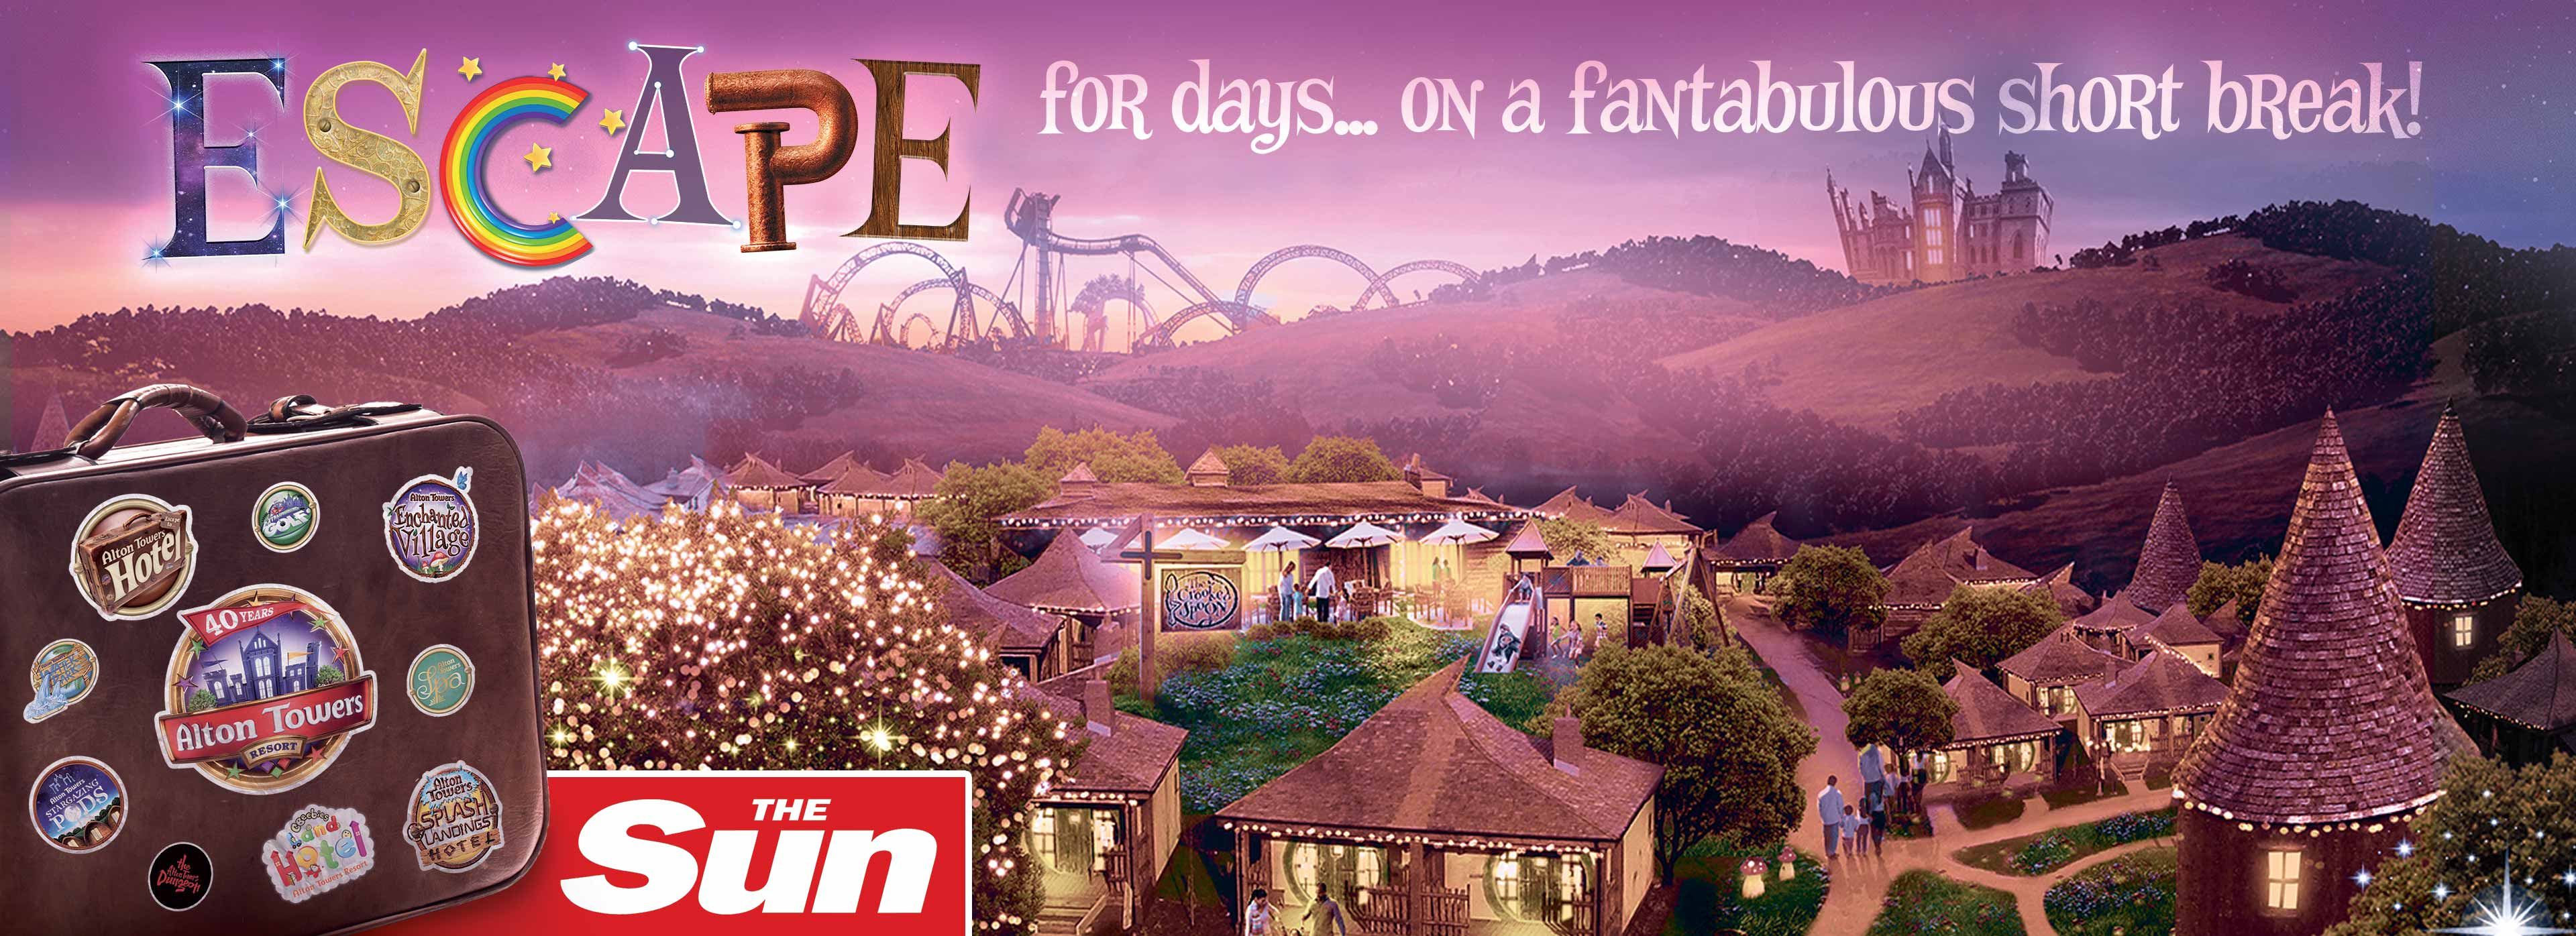 Save up to 40% with The Sun and Alton Towers Holidays